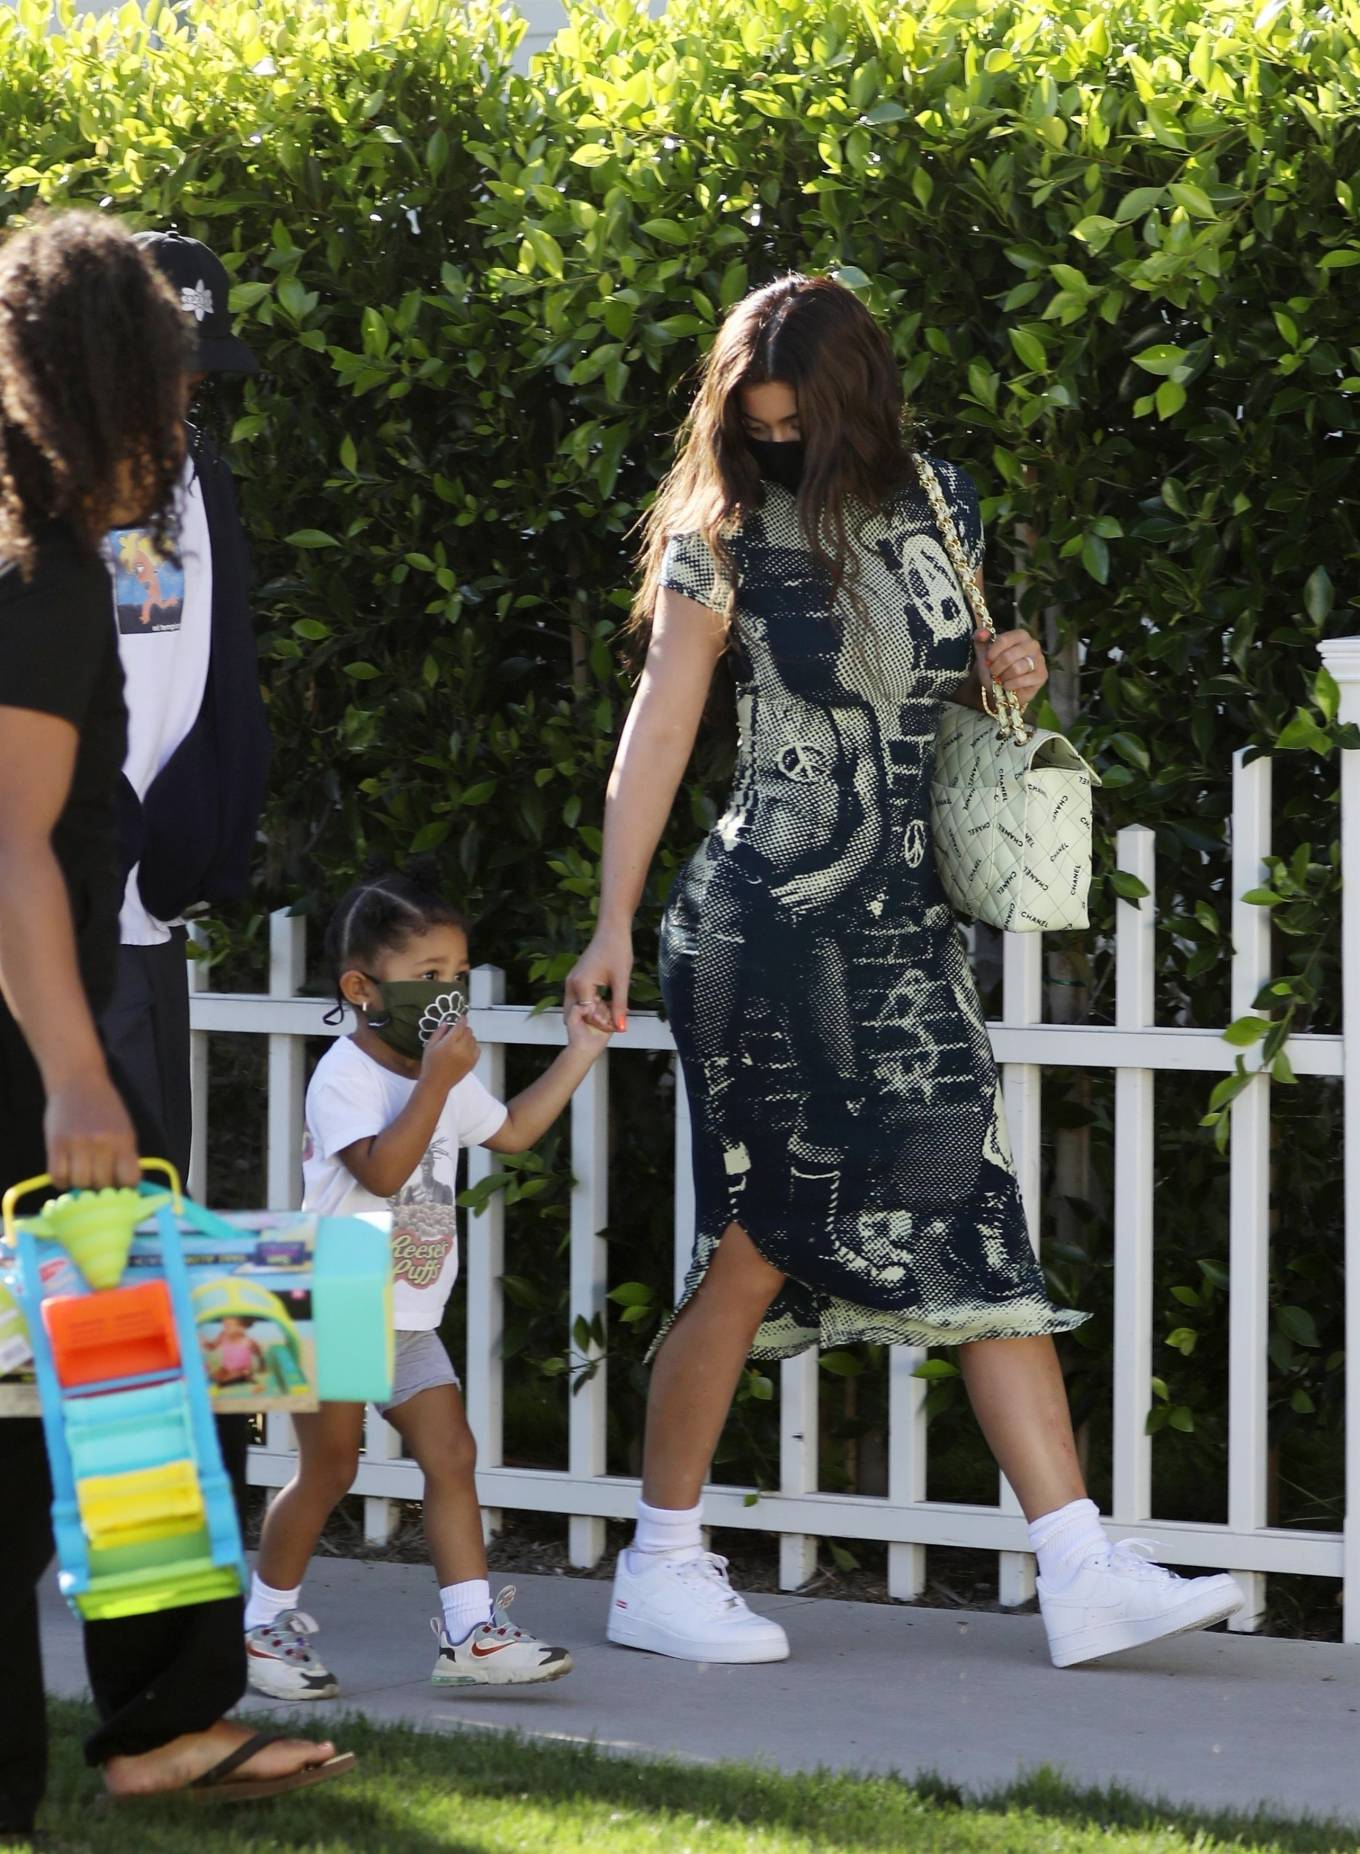 Kylie Jenner donning round white Nike lace-up sneakers